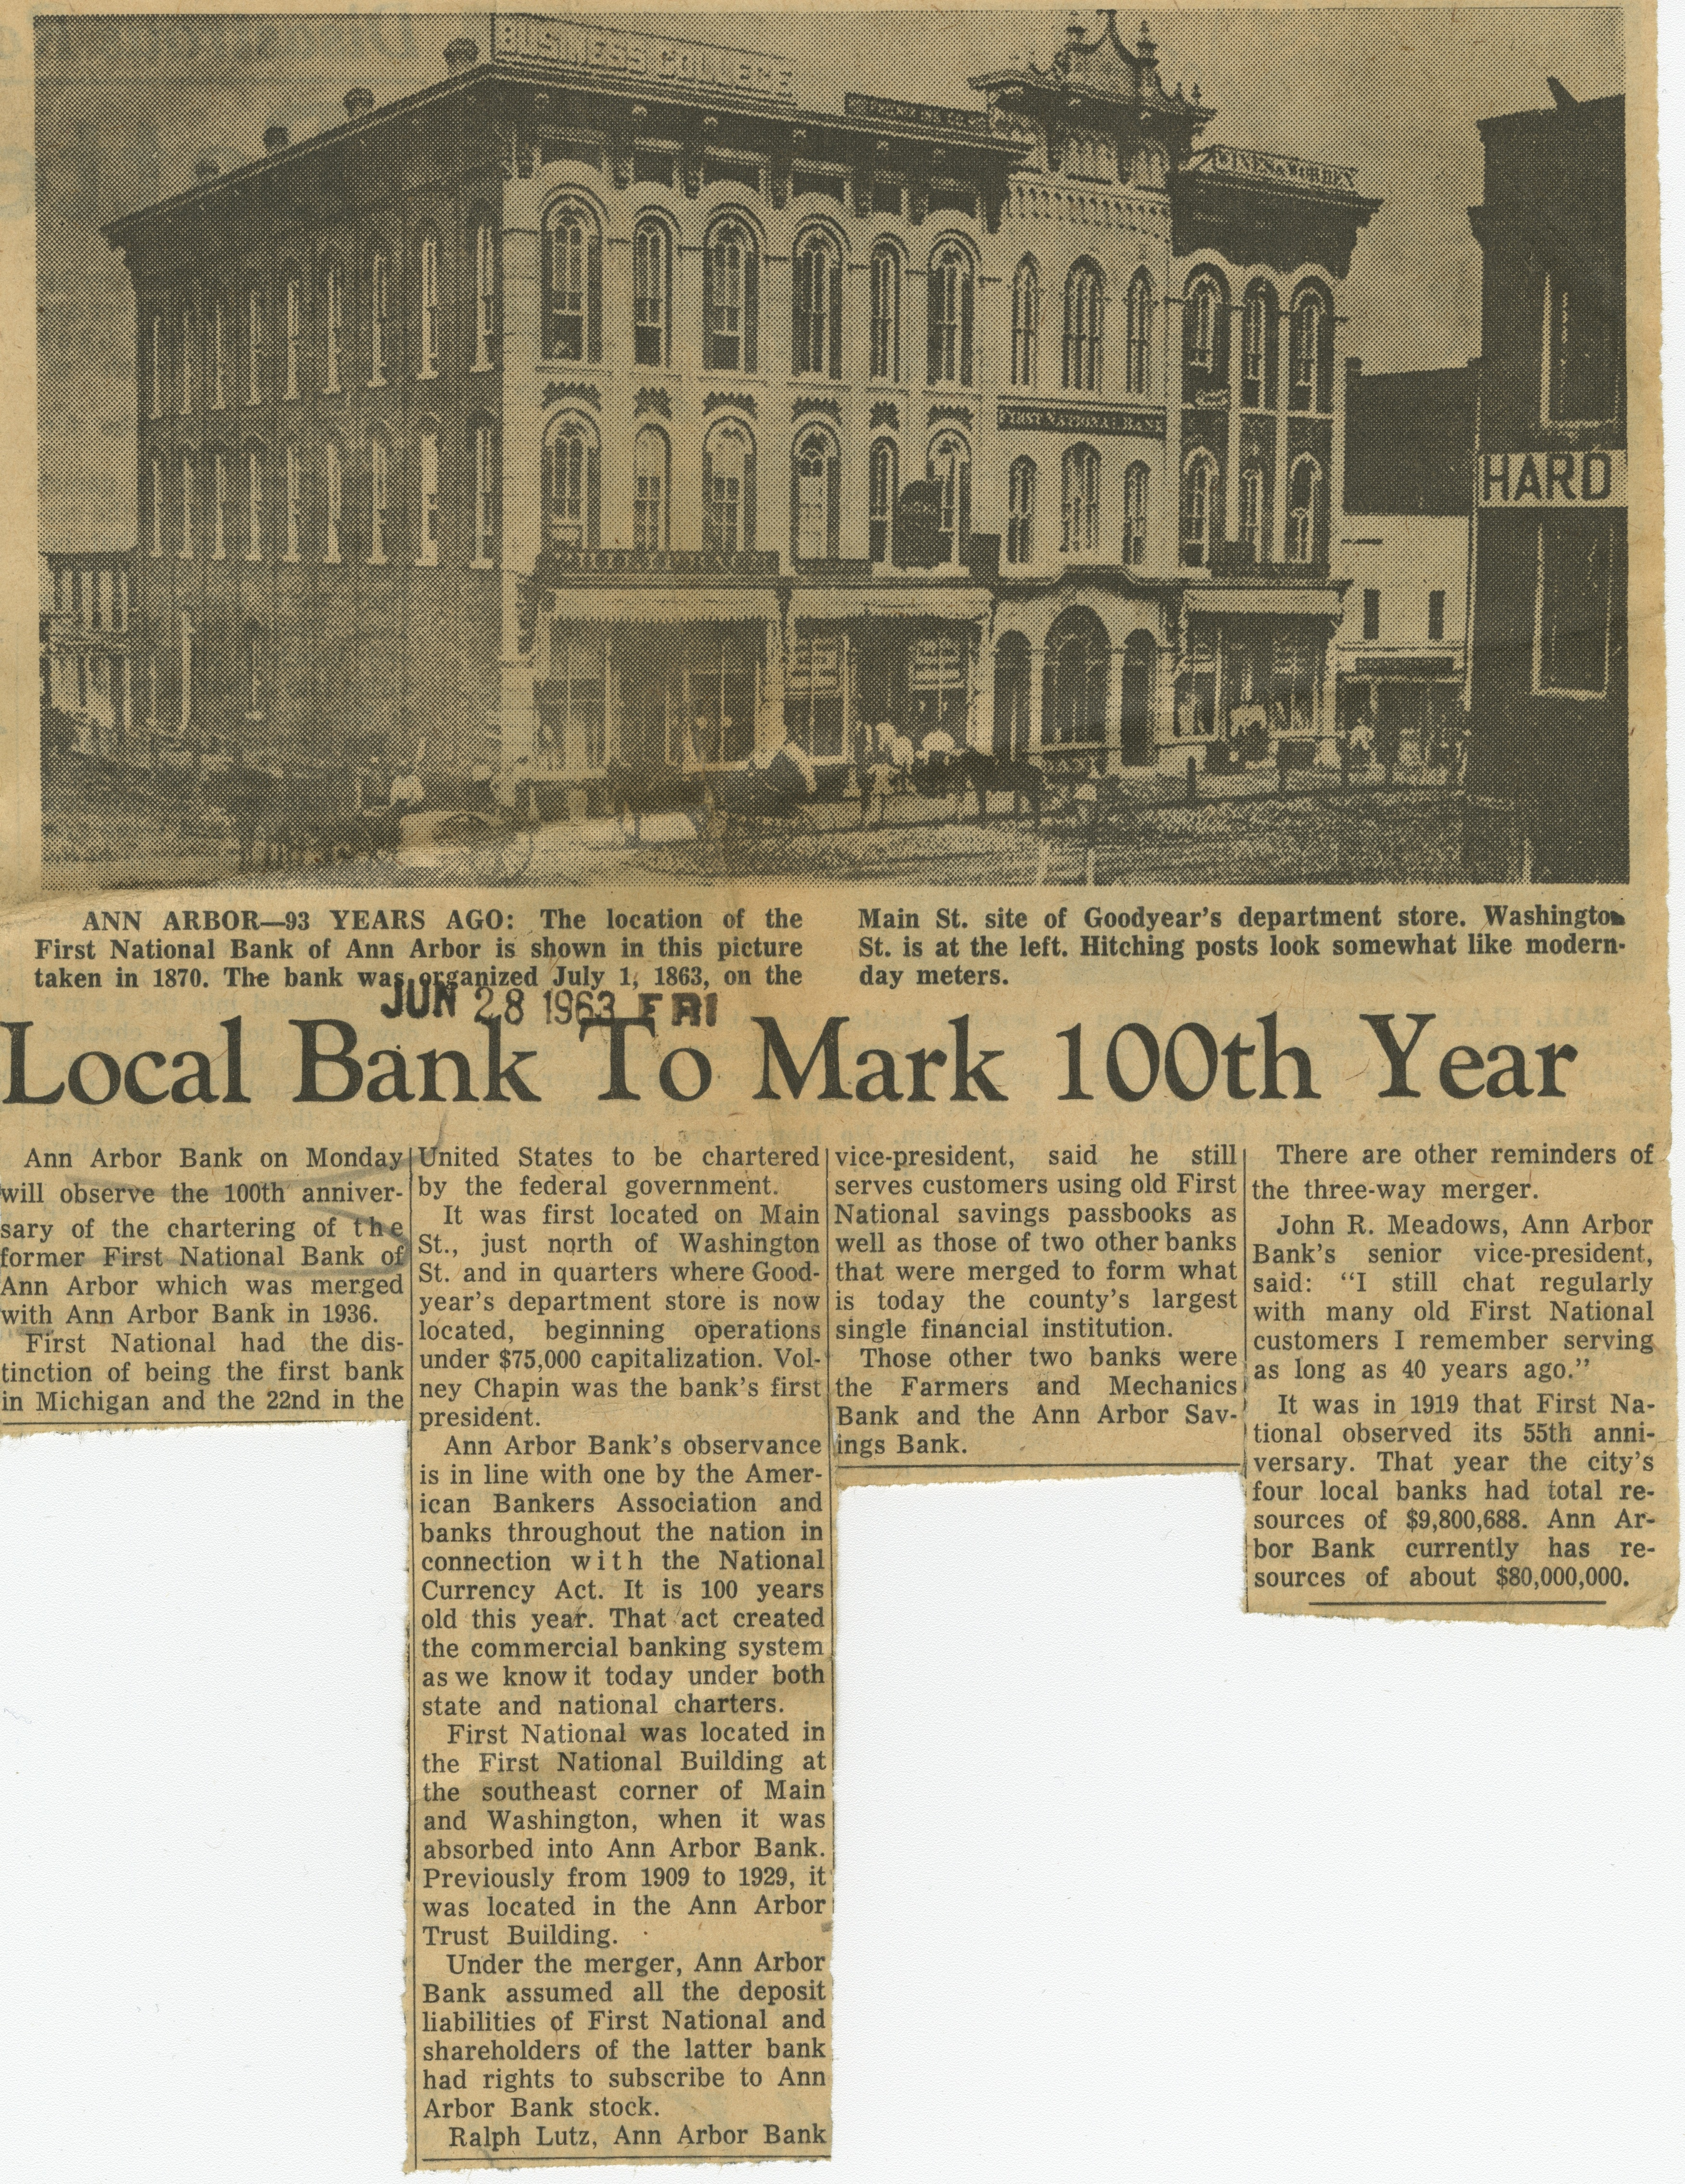 Local Bank To Mark 100th Year image